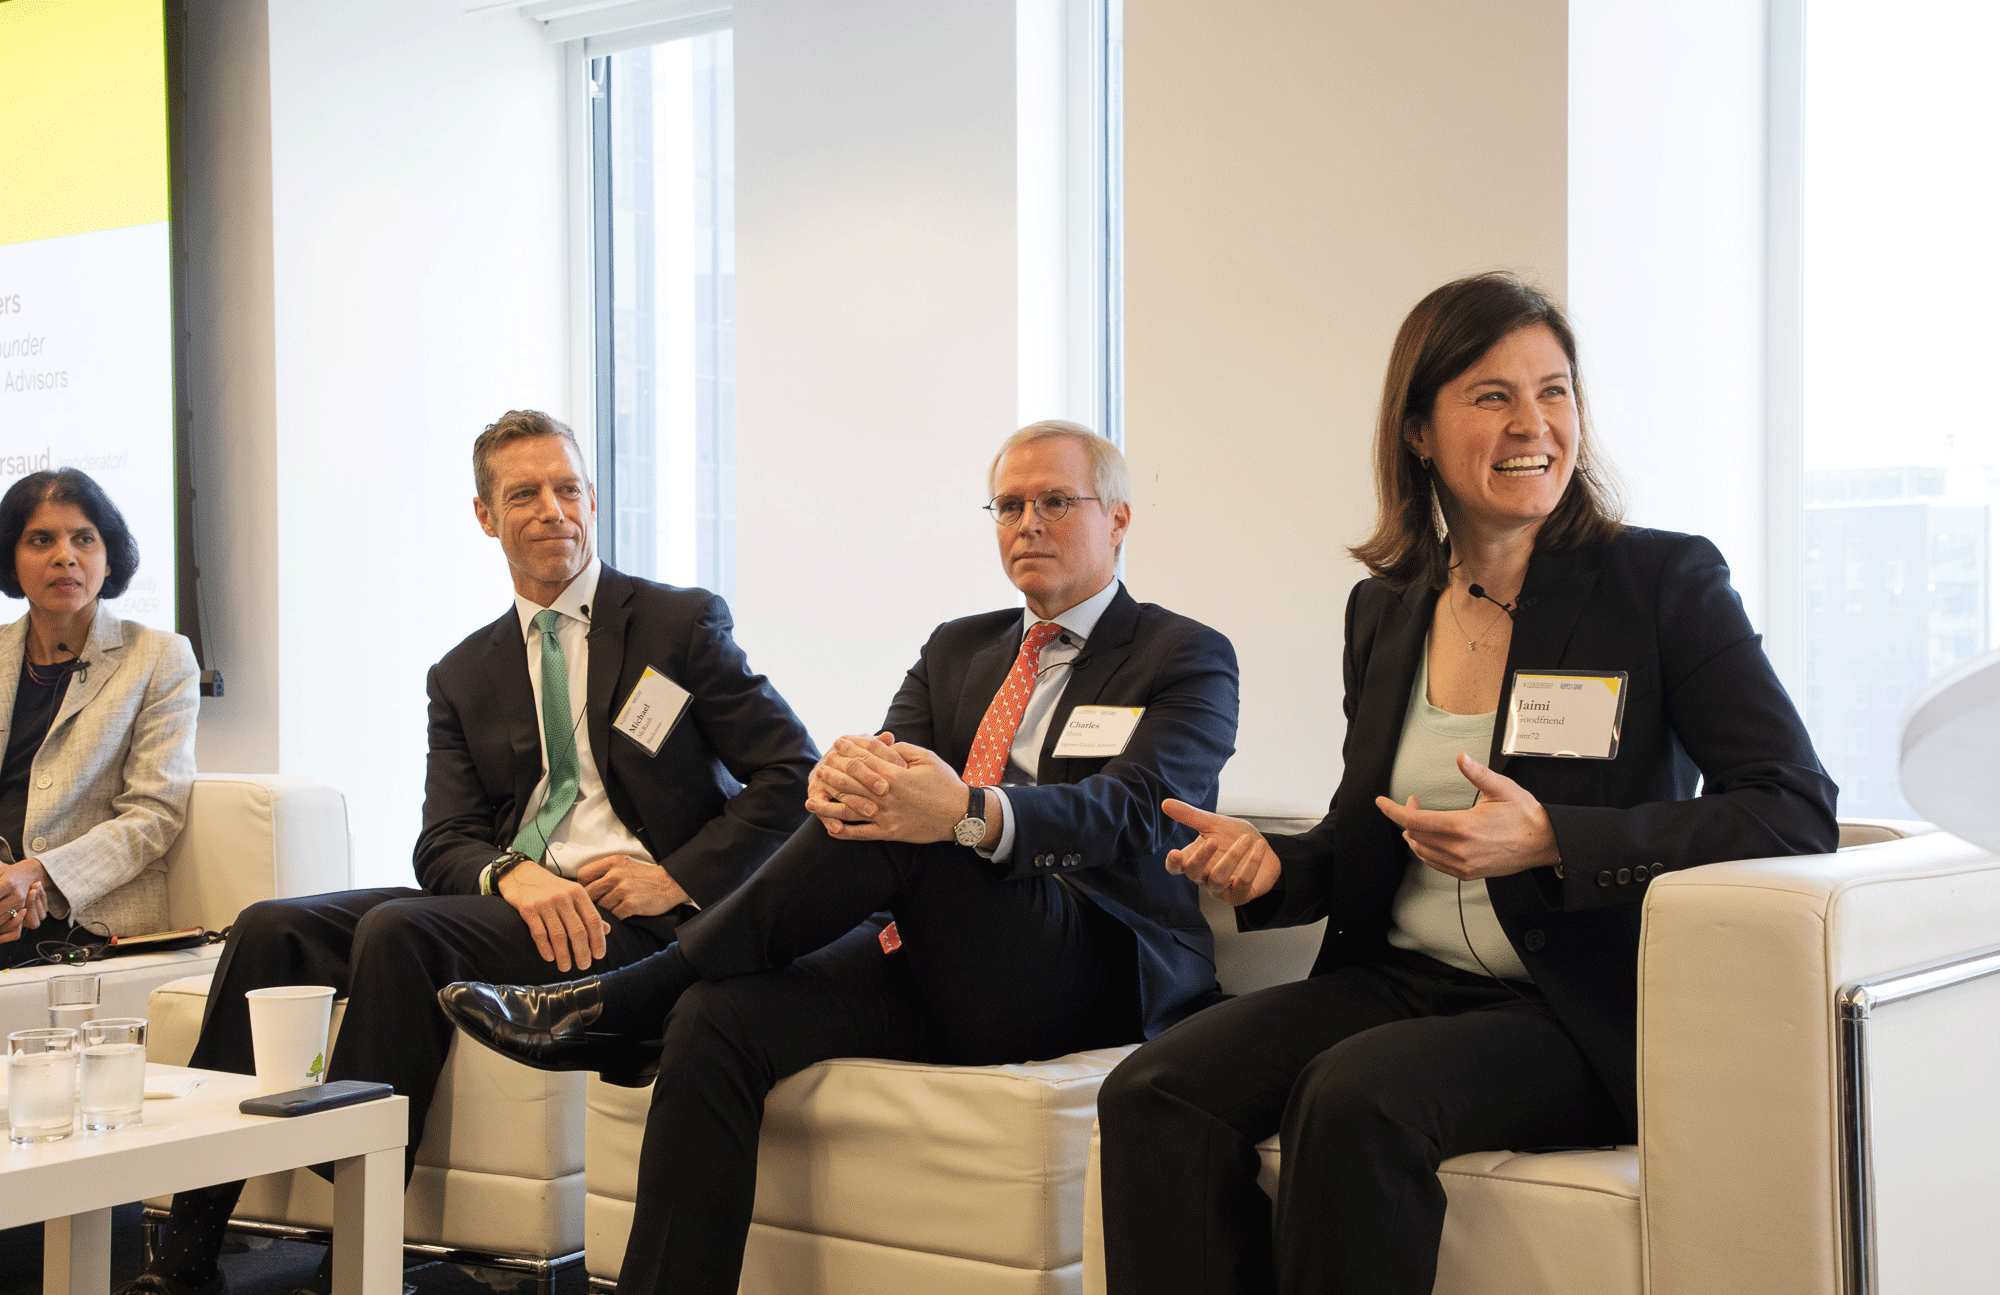 Alternative investments leaders discuss inclusion and the industry's role in driving progress